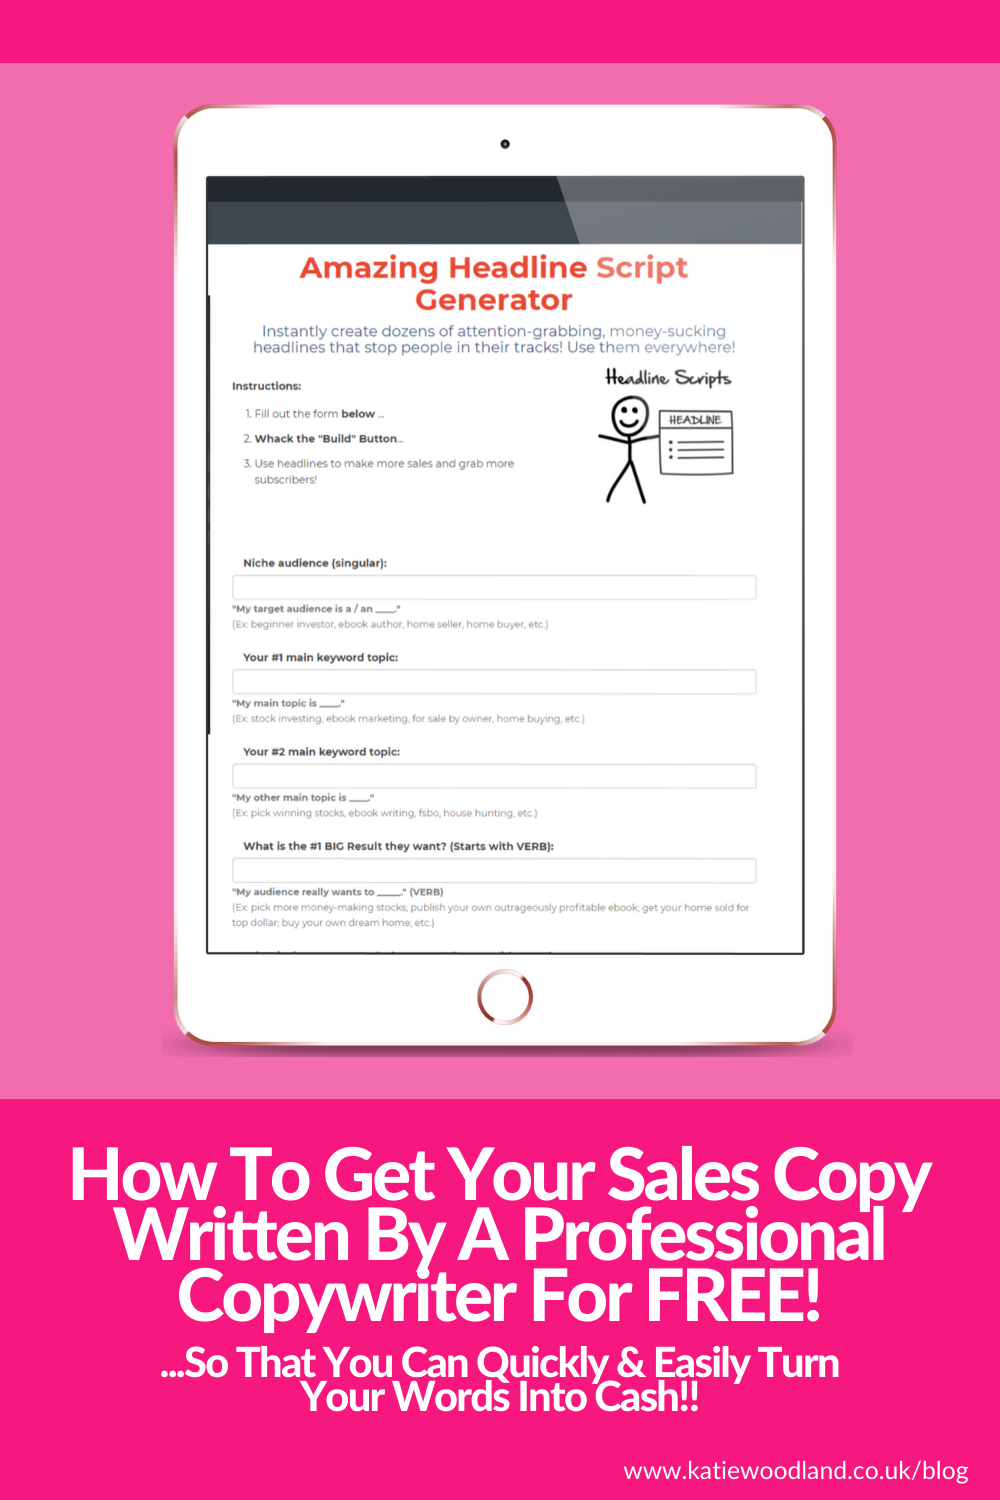 How To Get Your Sales Copy Written By A Professional Copywriter For FREE!